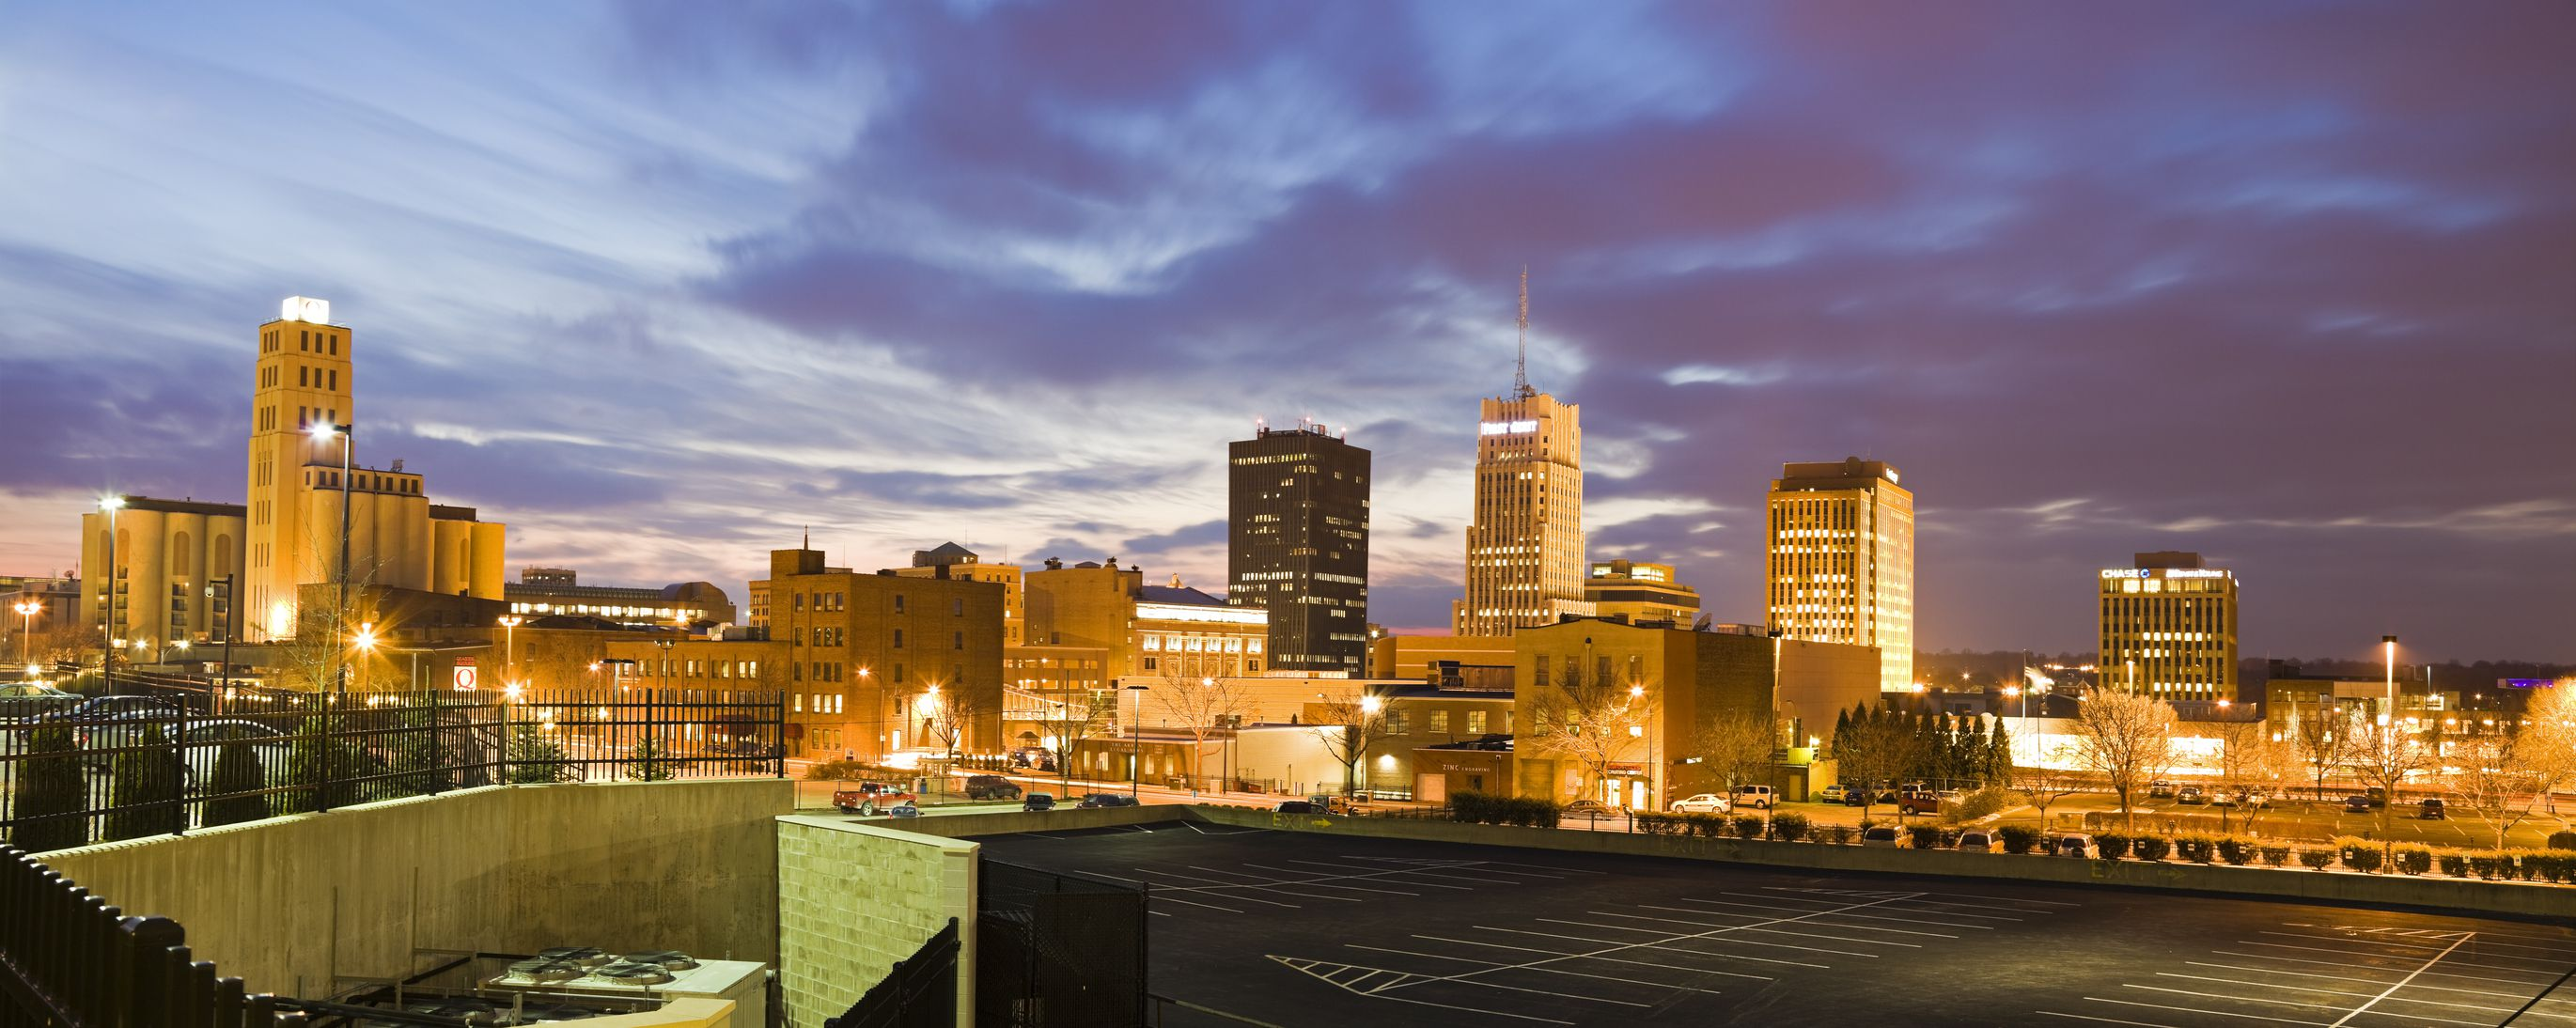 akron ohio canton cityscape dusk shopping usa places getty romantic malls things gettyimages